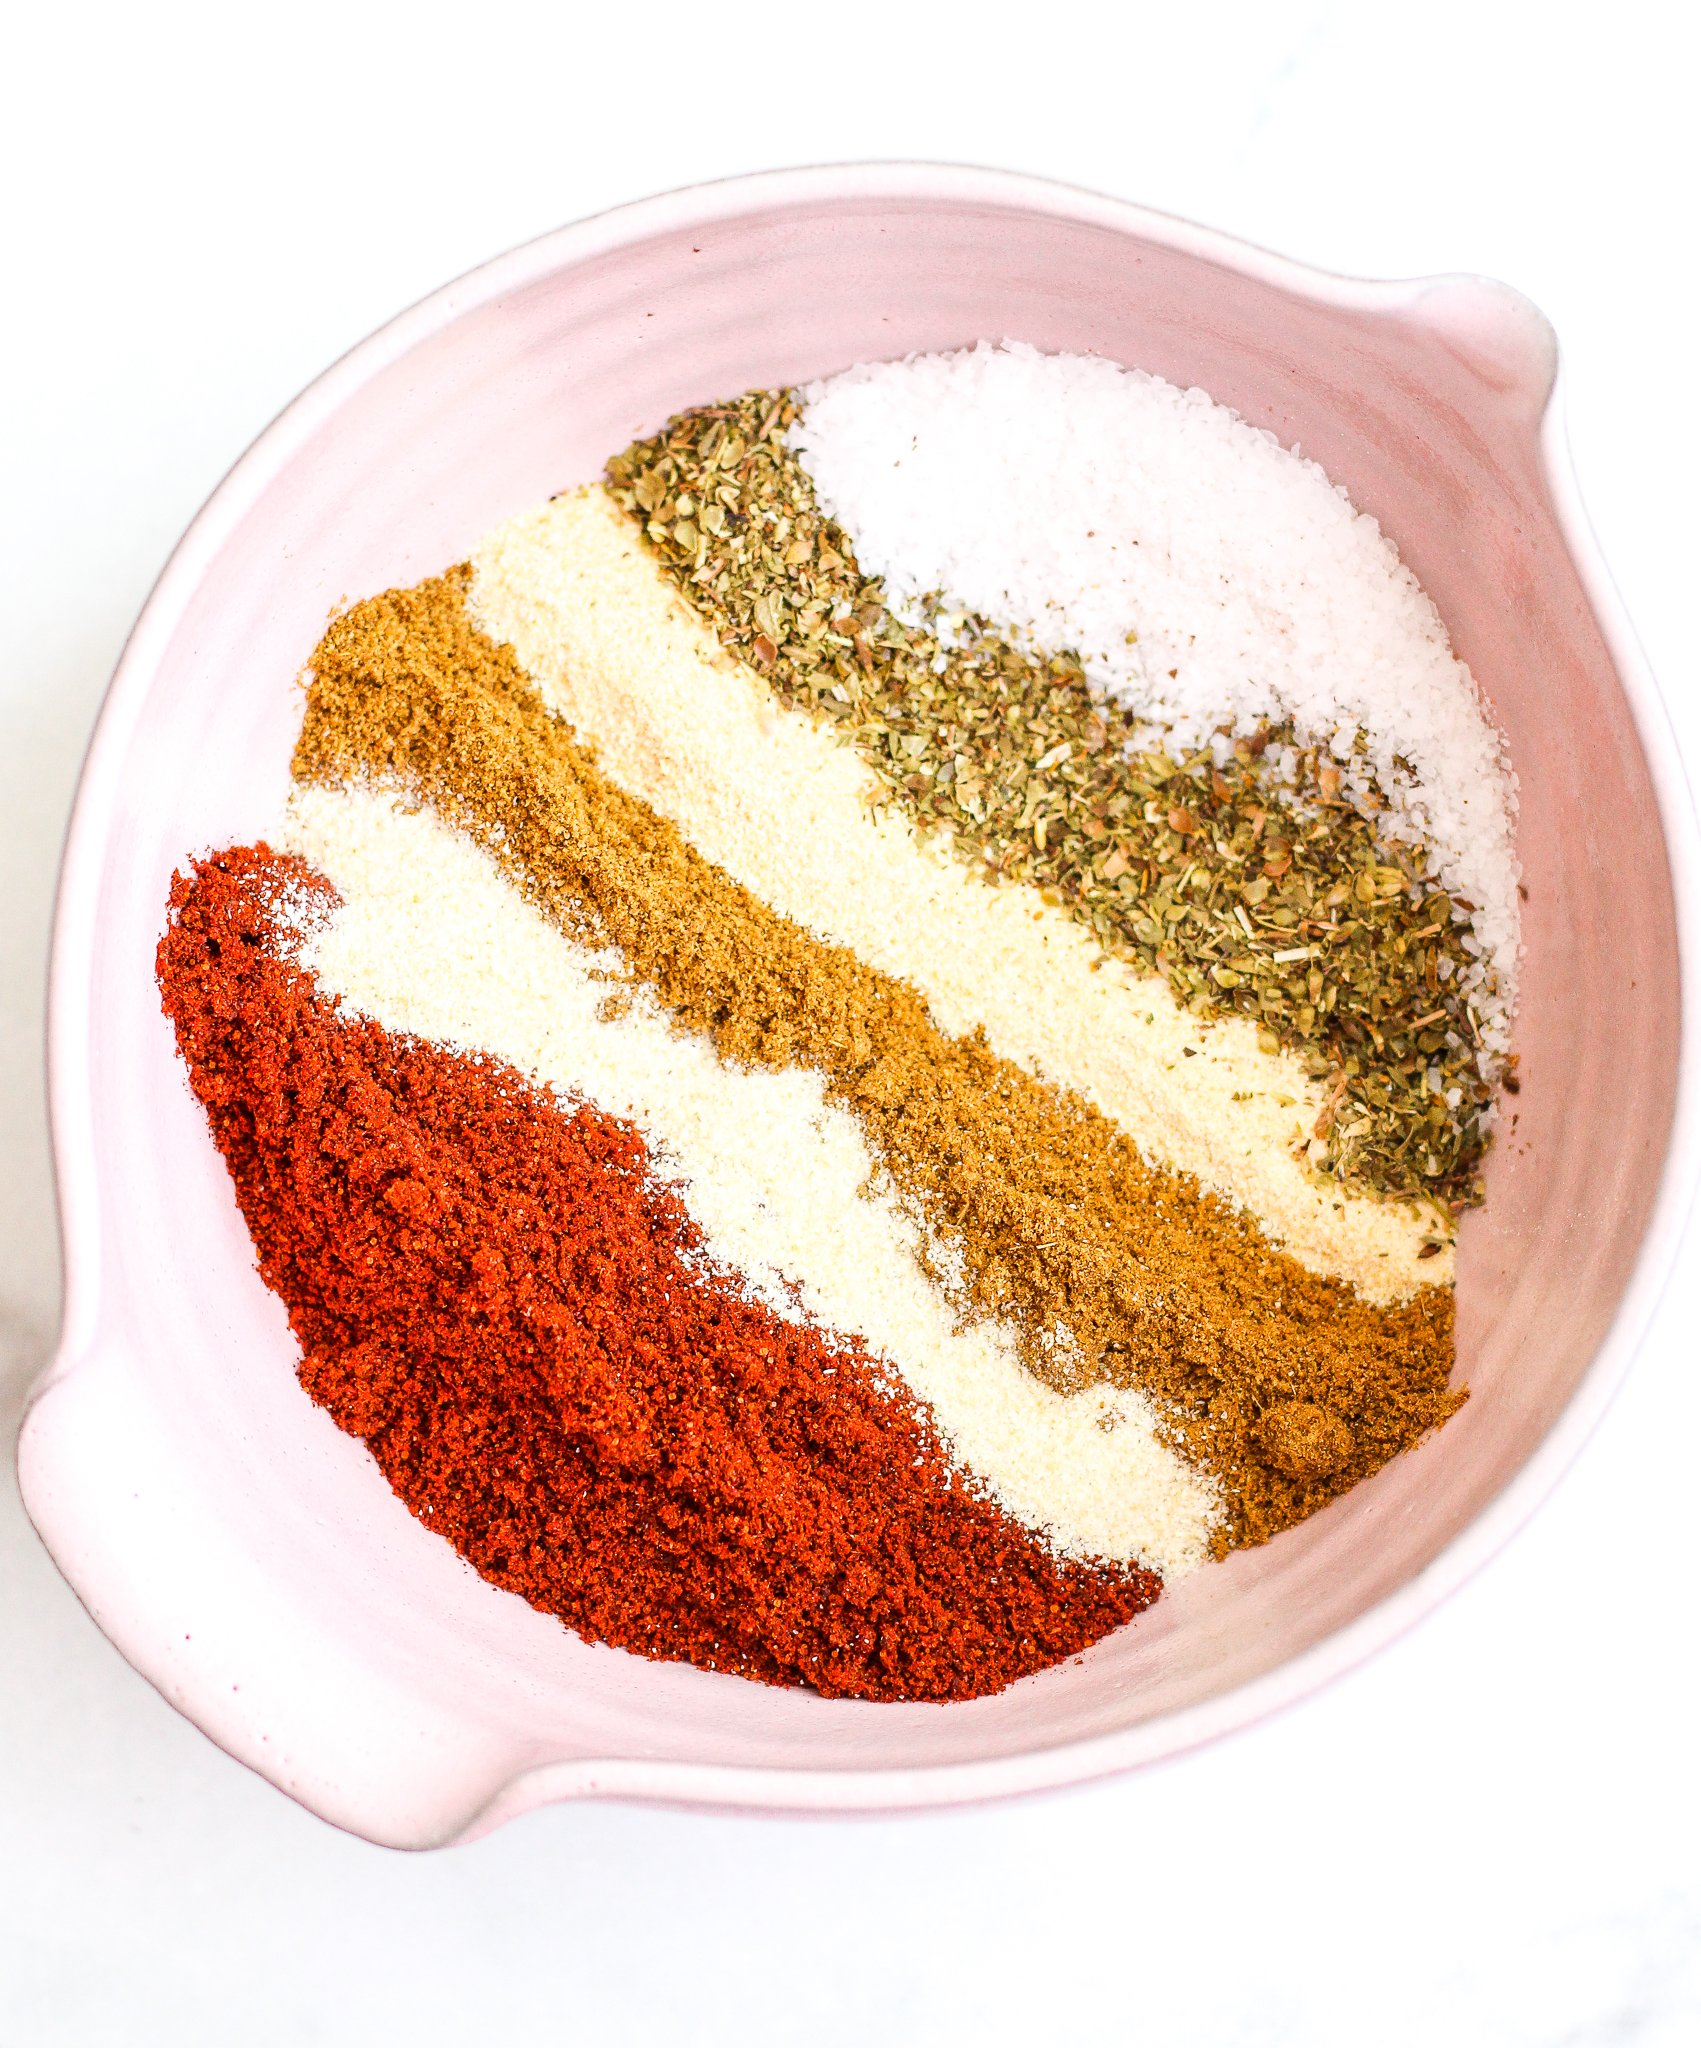 Layers of spices in a pick ceramic bowl